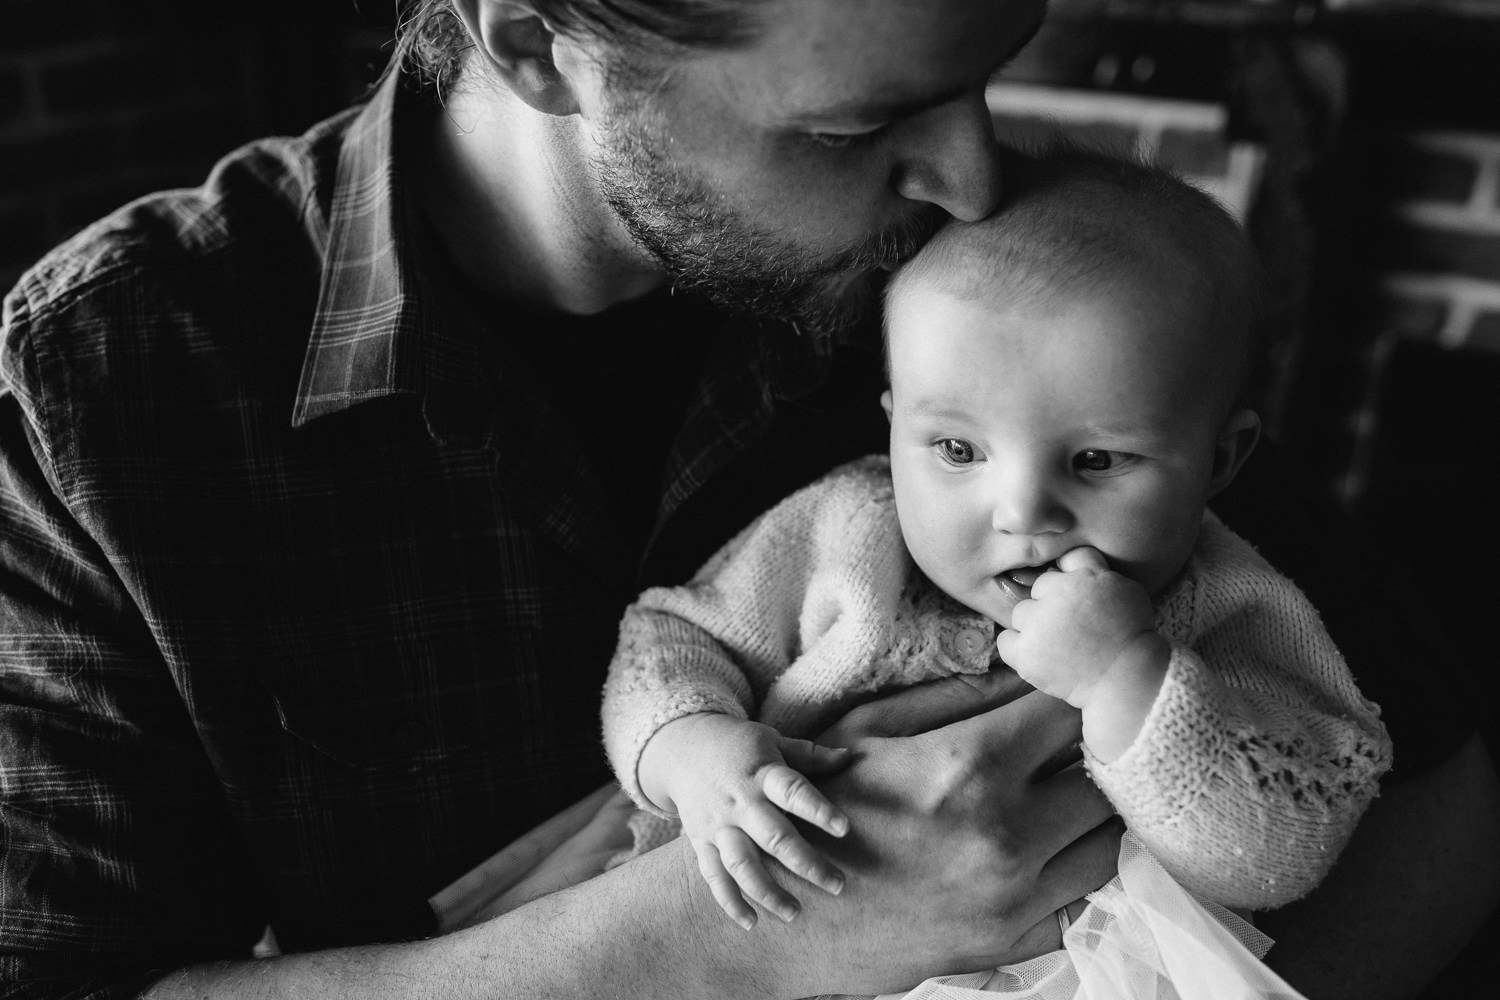 dad holds and kisses 5 month old baby girl in pink sweater who is chewing on her hands - Newmarket in-home photography